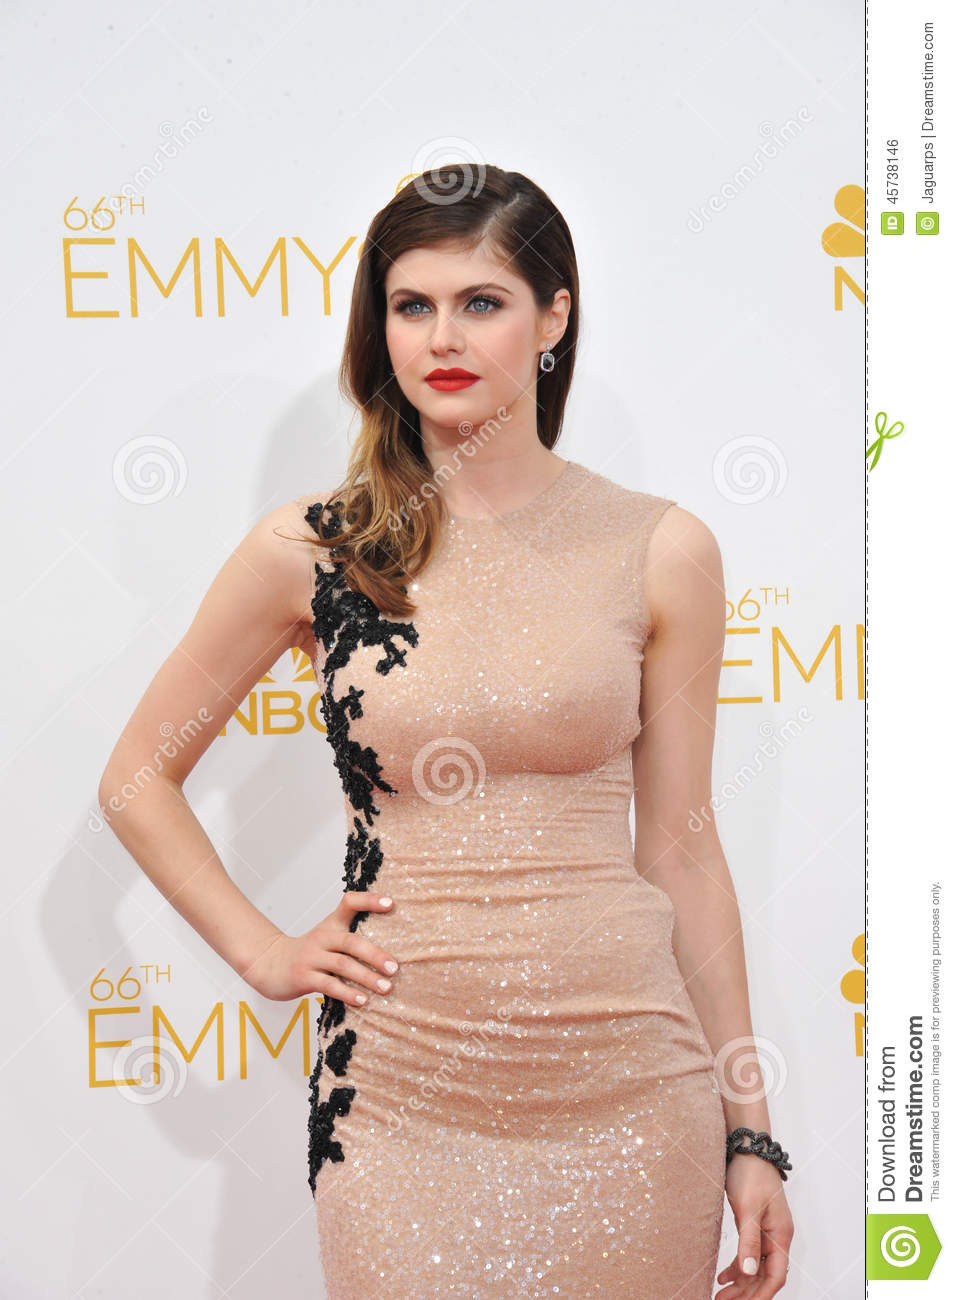 alexandra daddario no makeupalexandra daddario фильмы, alexandra daddario imdb, alexandra daddario вики, alexandra daddario matt bomer, alexandra daddario gif hunt tumblr, alexandra daddario percy jackson, alexandra daddario wdw, alexandra daddario esquire, alexandra daddario theplace, alexandra daddario no makeup, alexandra daddario sebastian stan, alexandra daddario run, alexandra daddario filmography, alexandra daddario roanoke, alexandra daddario wikipedia, alexandra daddario crackship, alexandra daddario jimmy kimmel, alexandra daddario vanity fair magazine, alexandra daddario quotes, alexandra daddario vs. emma watson